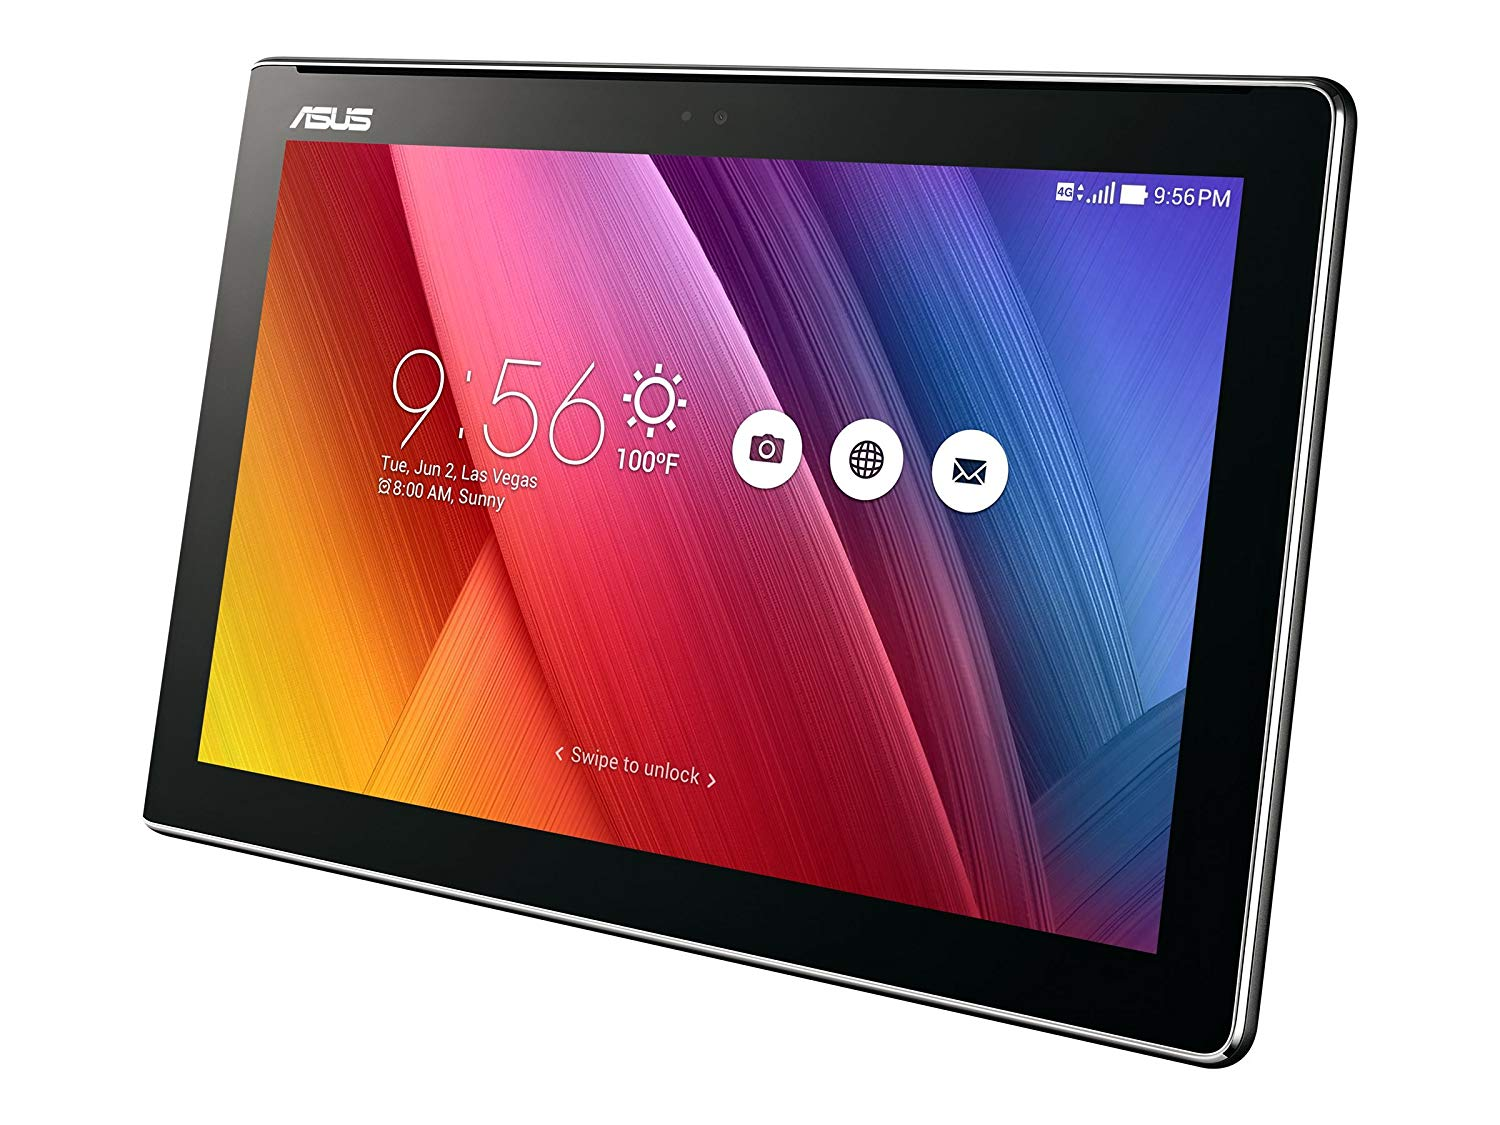 asus zenpad tablet black usywxkl accent plus computers accessories wesley allen furniture white chair bar table lamps floor pieces printed dining room chairs little side round